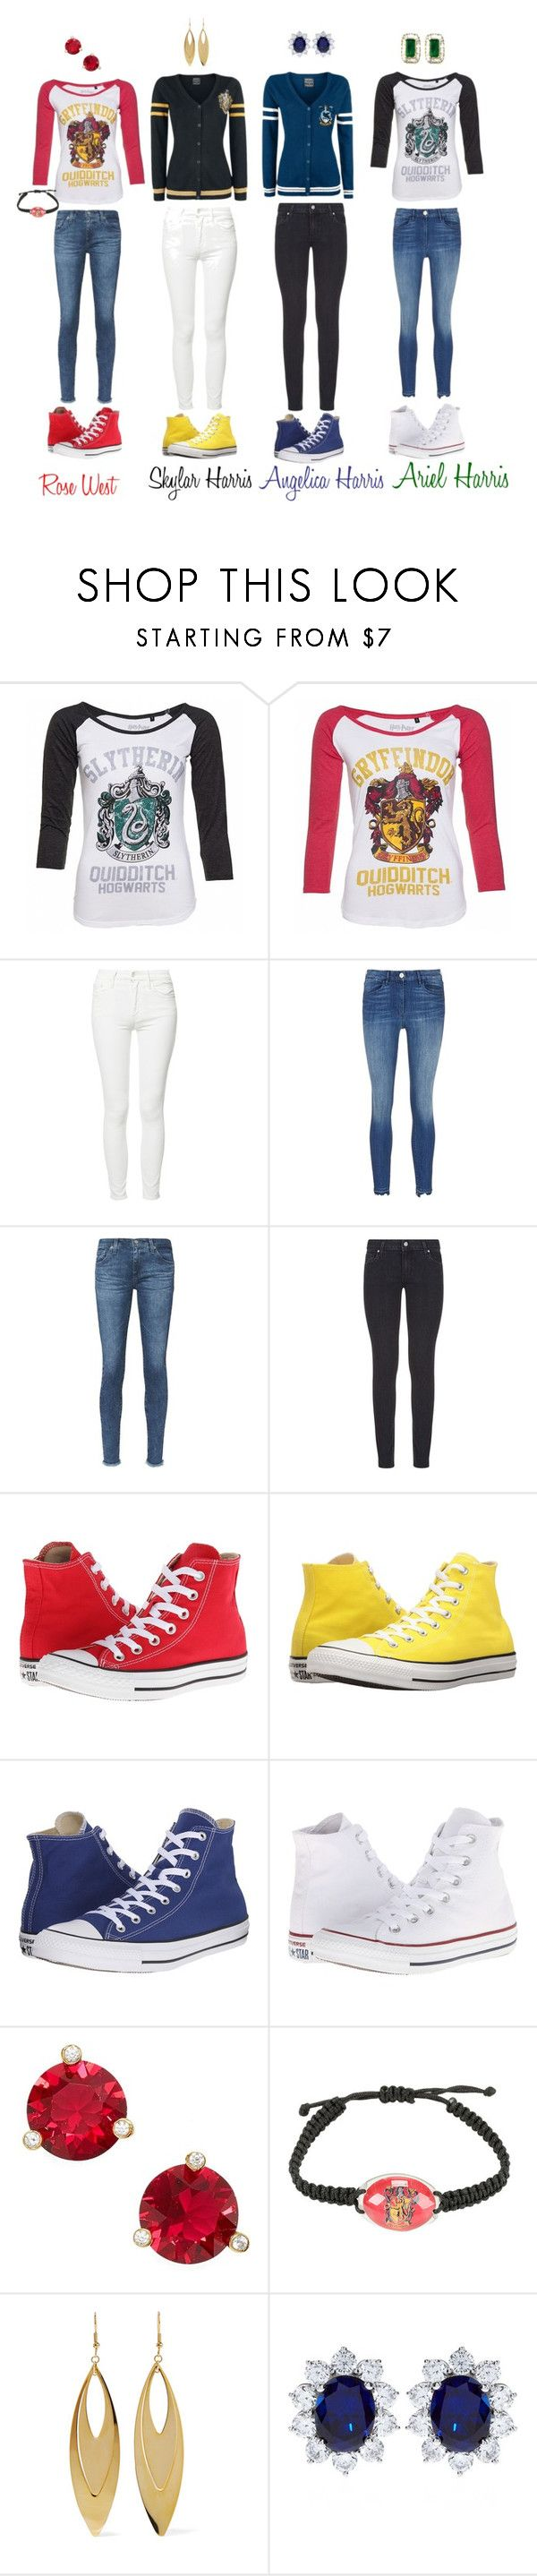 """Eclipse: Harry Potter Days"" by sweetshylovelyelle ❤ liked on Polyvore featuring Mother, 3x1, AG Adriano Goldschmied, Paige Denim, Converse, Kate Spade, Warner Bros., Kenneth Jay Lane, CARAT* London and Effy Jewelry"